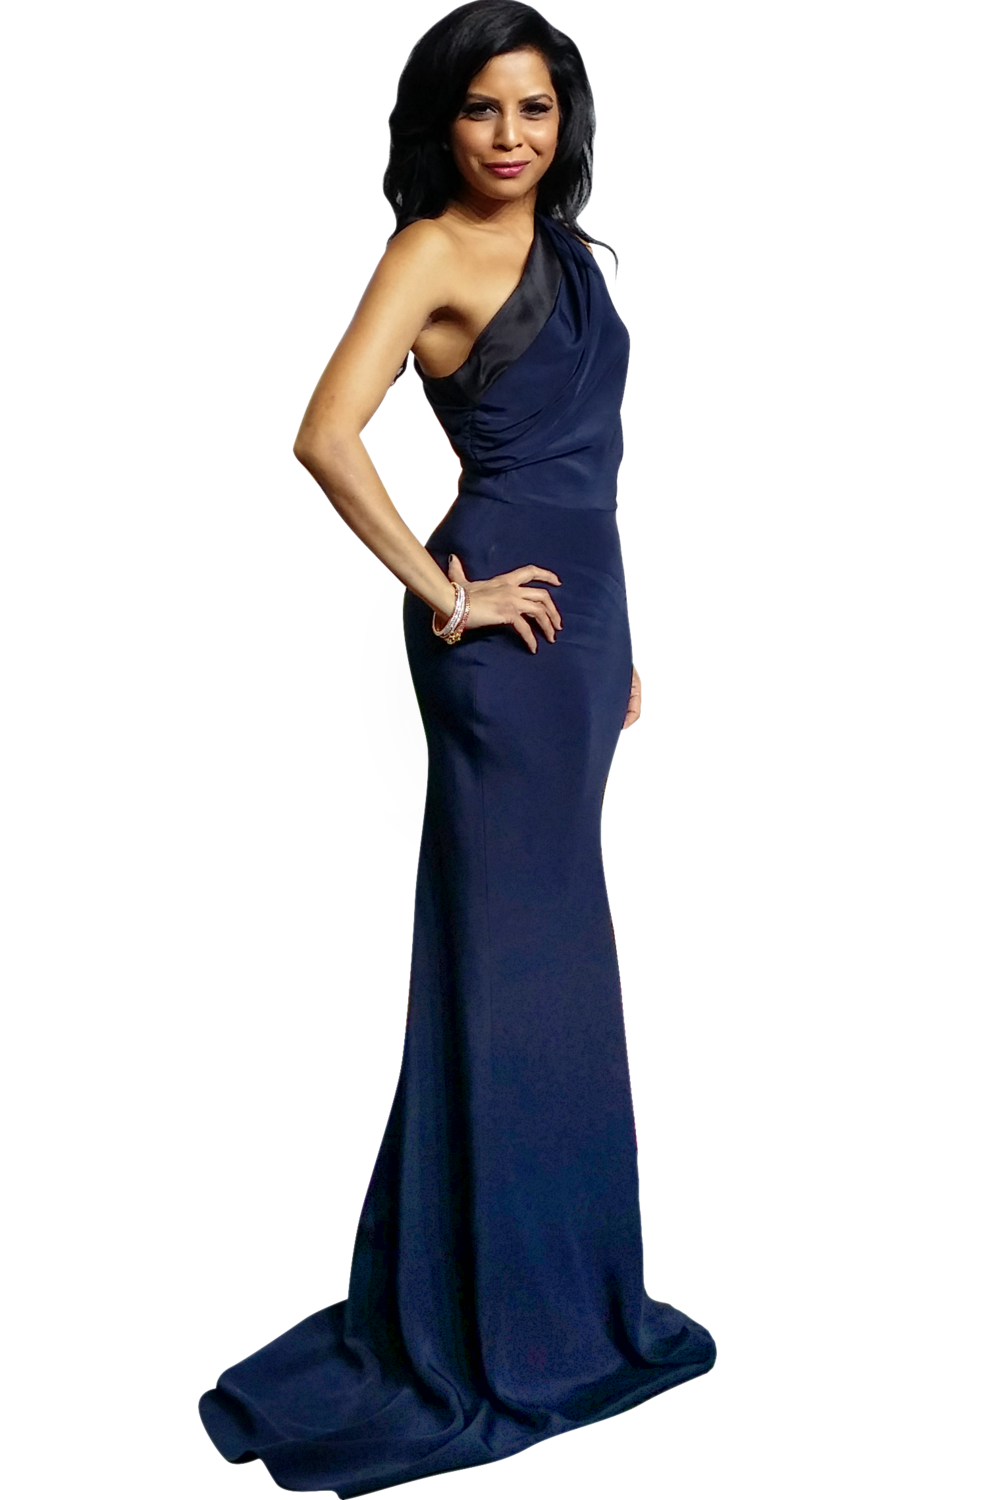 Hitha Herzog wearing a one shoulder top, midnight blue gown.